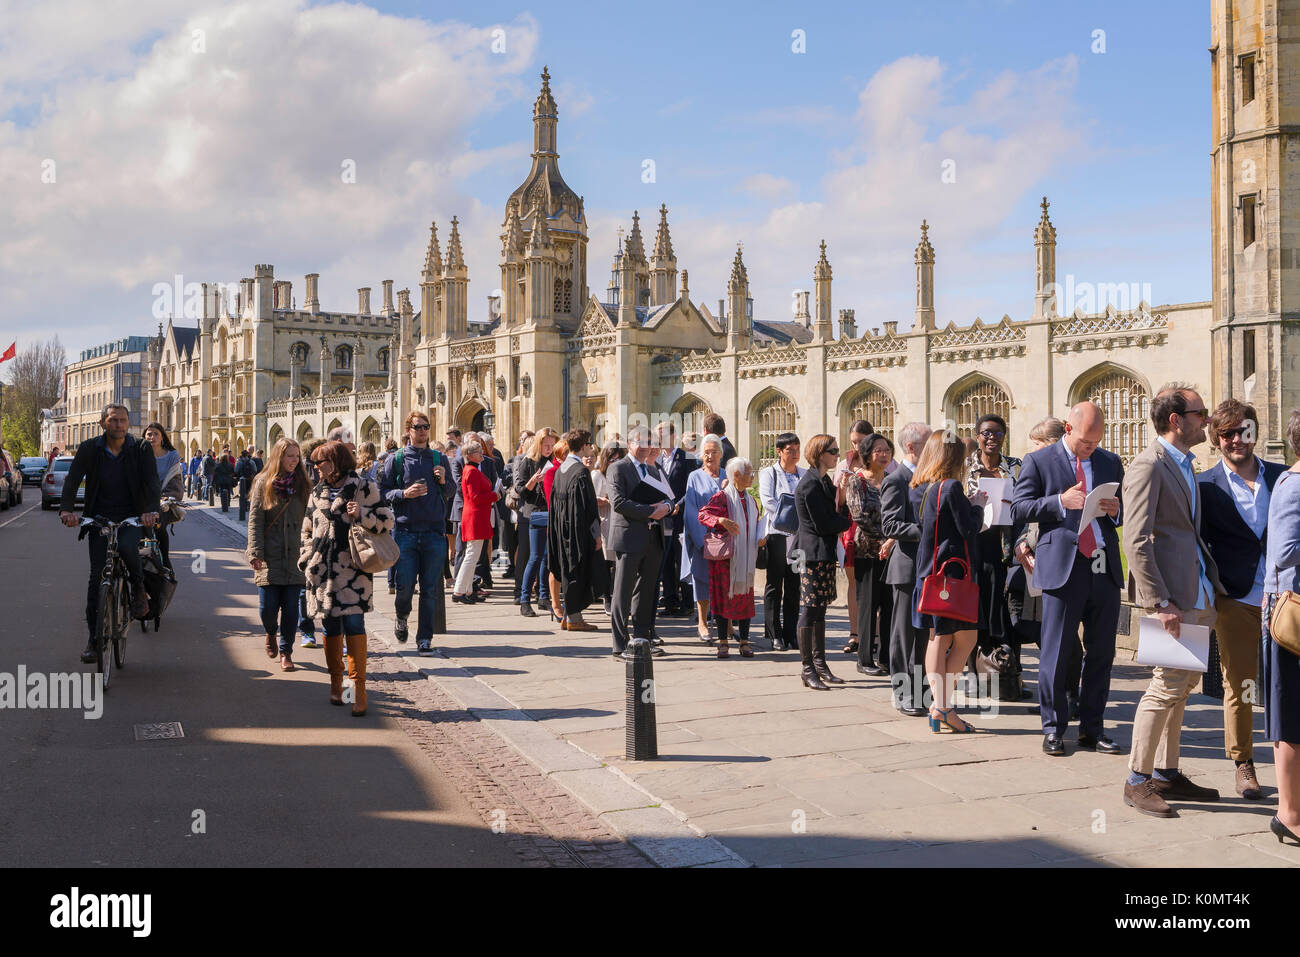 Cambridge graduation UK, relatives and friends of Cambridge University undergraduates queue in King's Parade to attend a graduation ceremony, England. - Stock Image